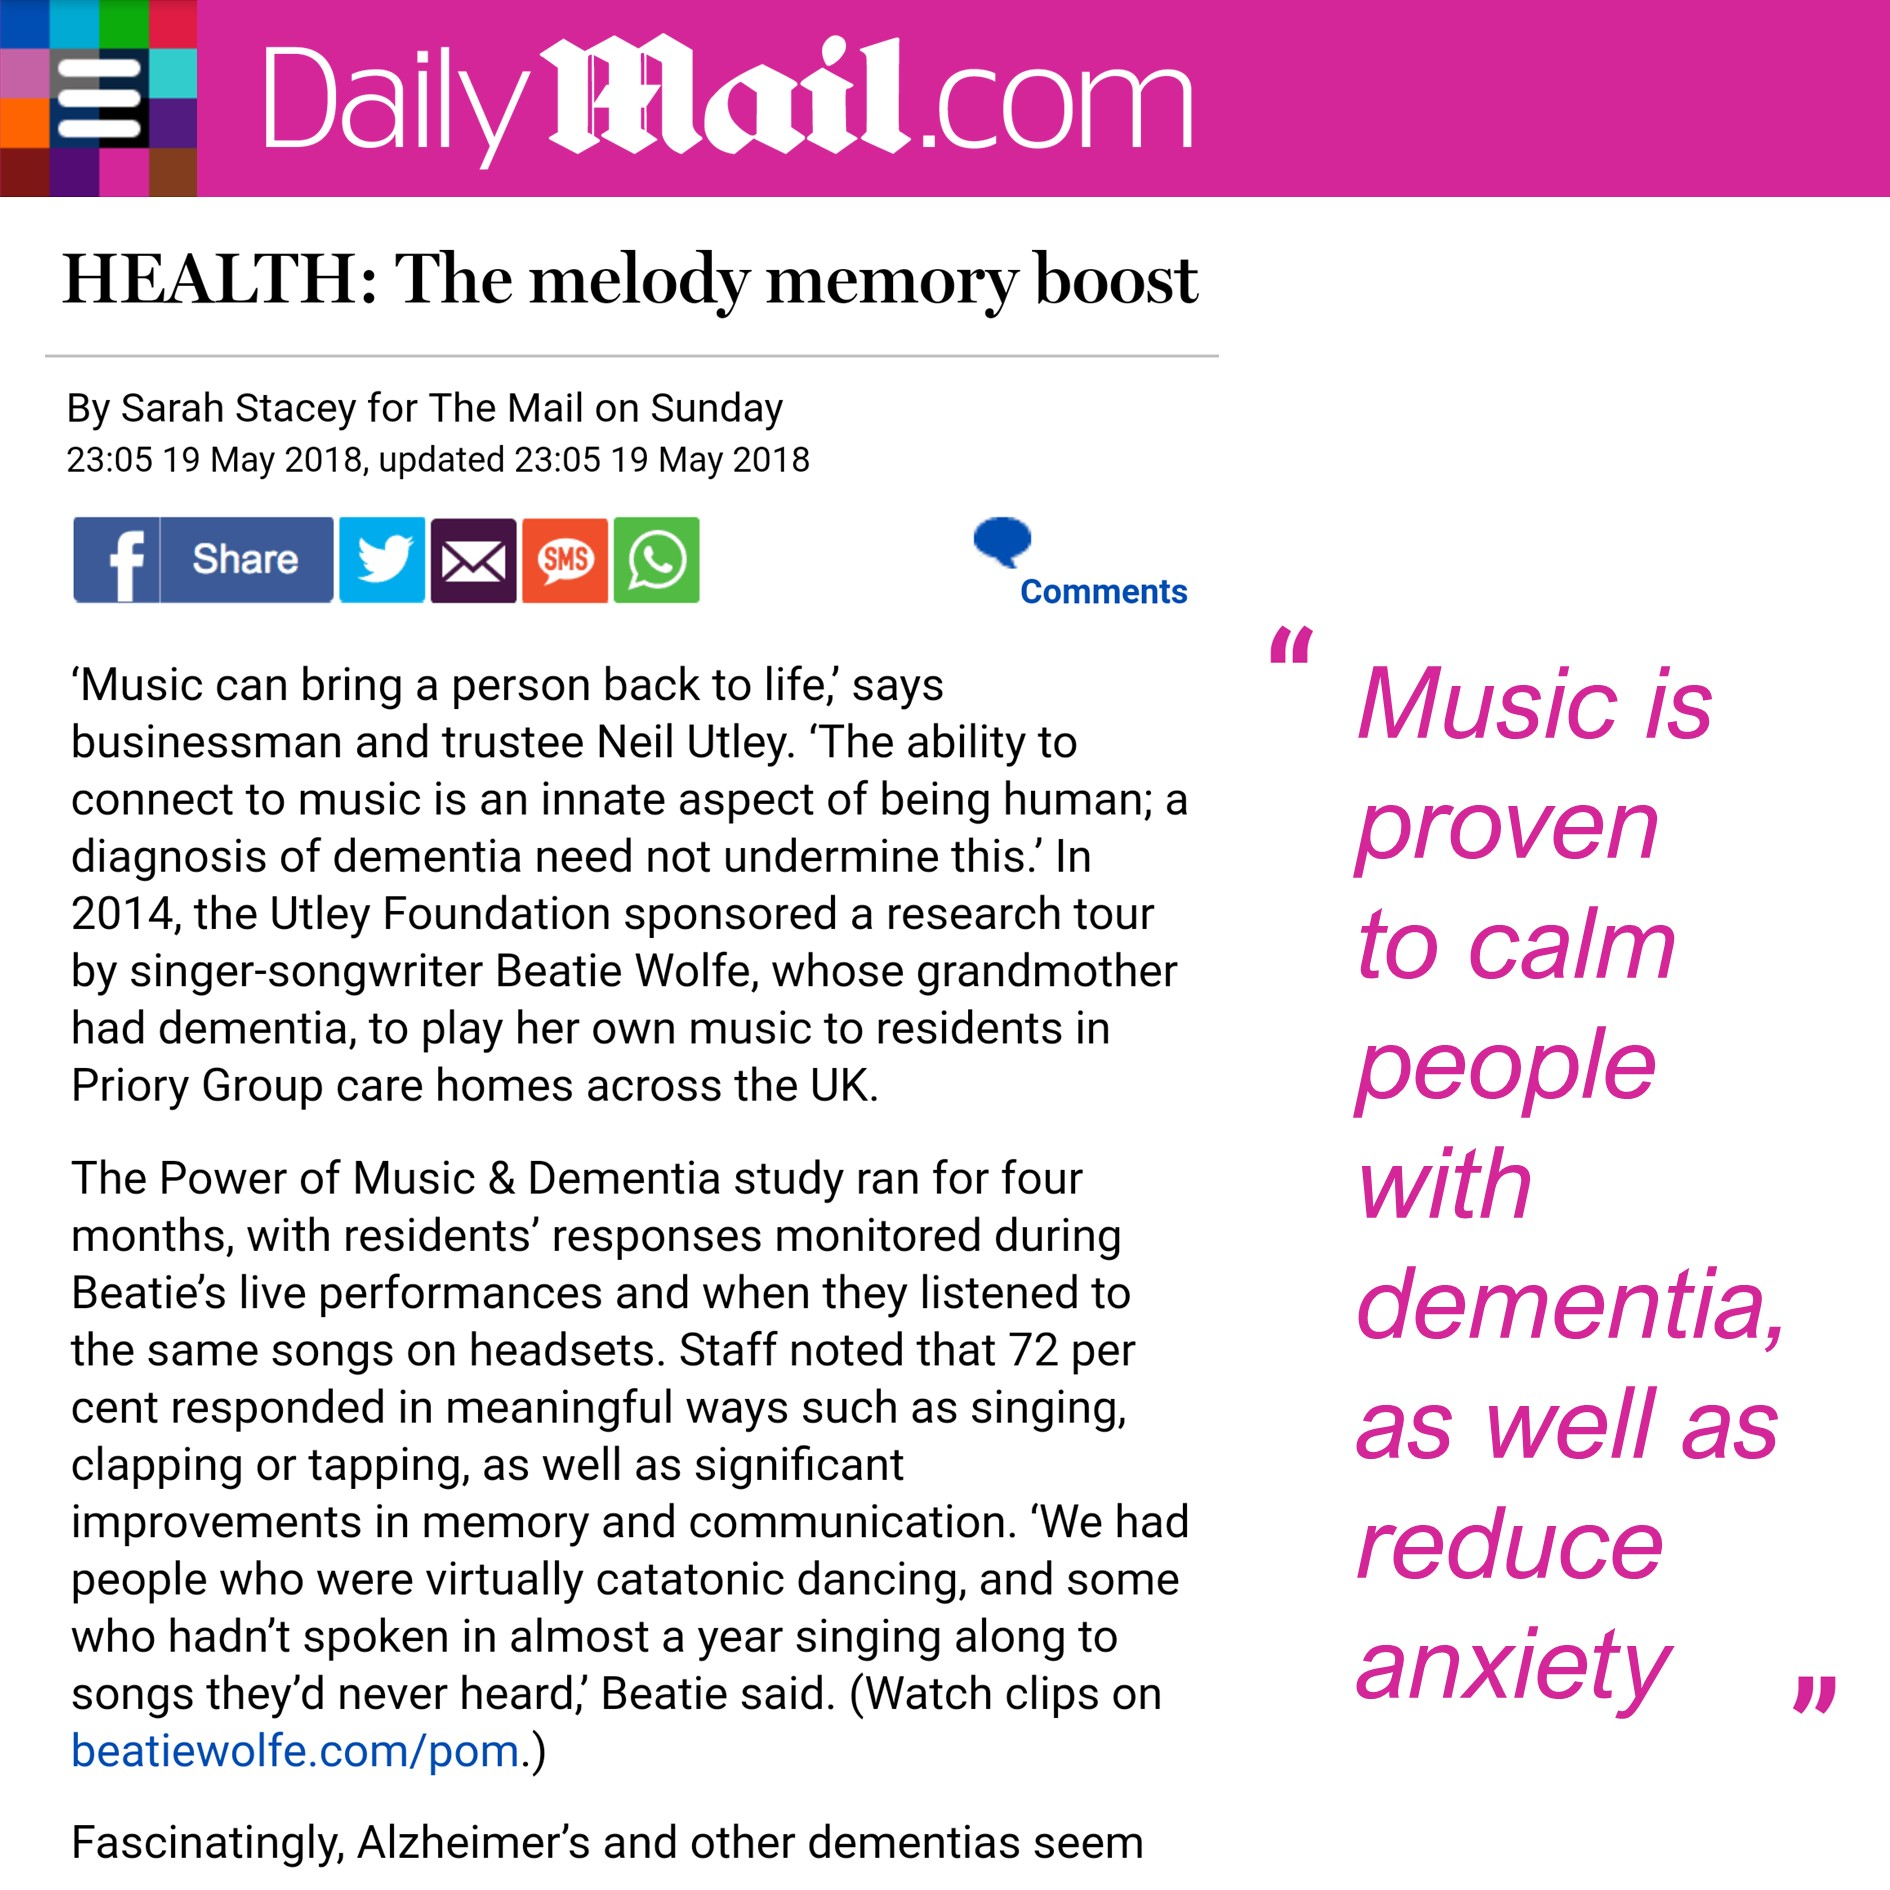 Power of Music and Dementia with Beatie Wolfe and The Utley Foundation